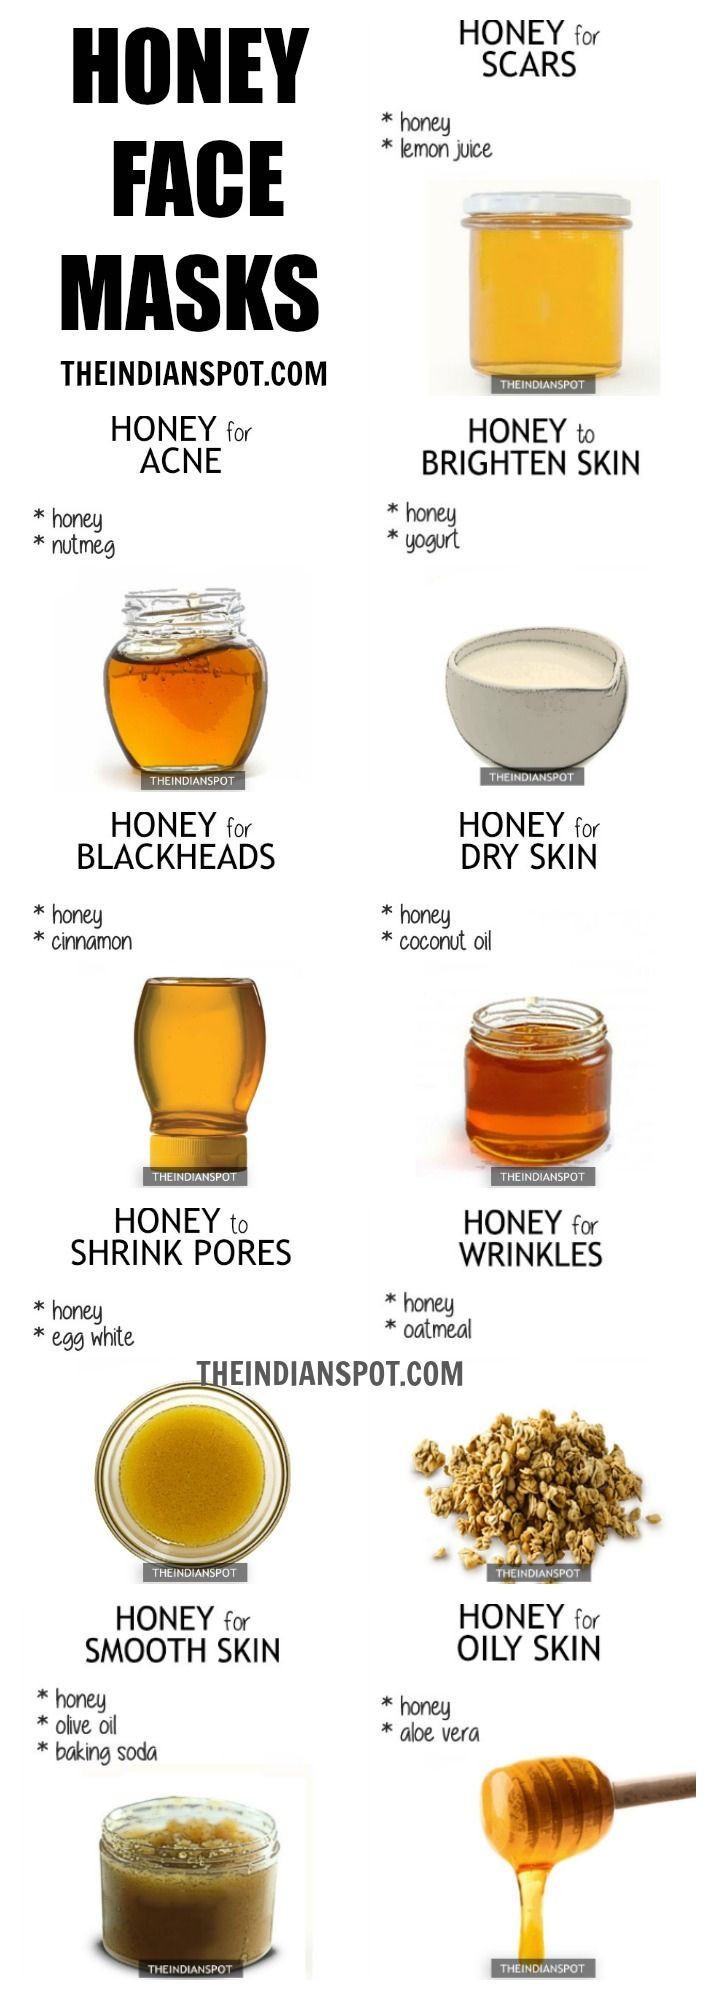 Best ideas about Honey Face Mask DIY . Save or Pin Best 20 Face ideas on Pinterest Now.